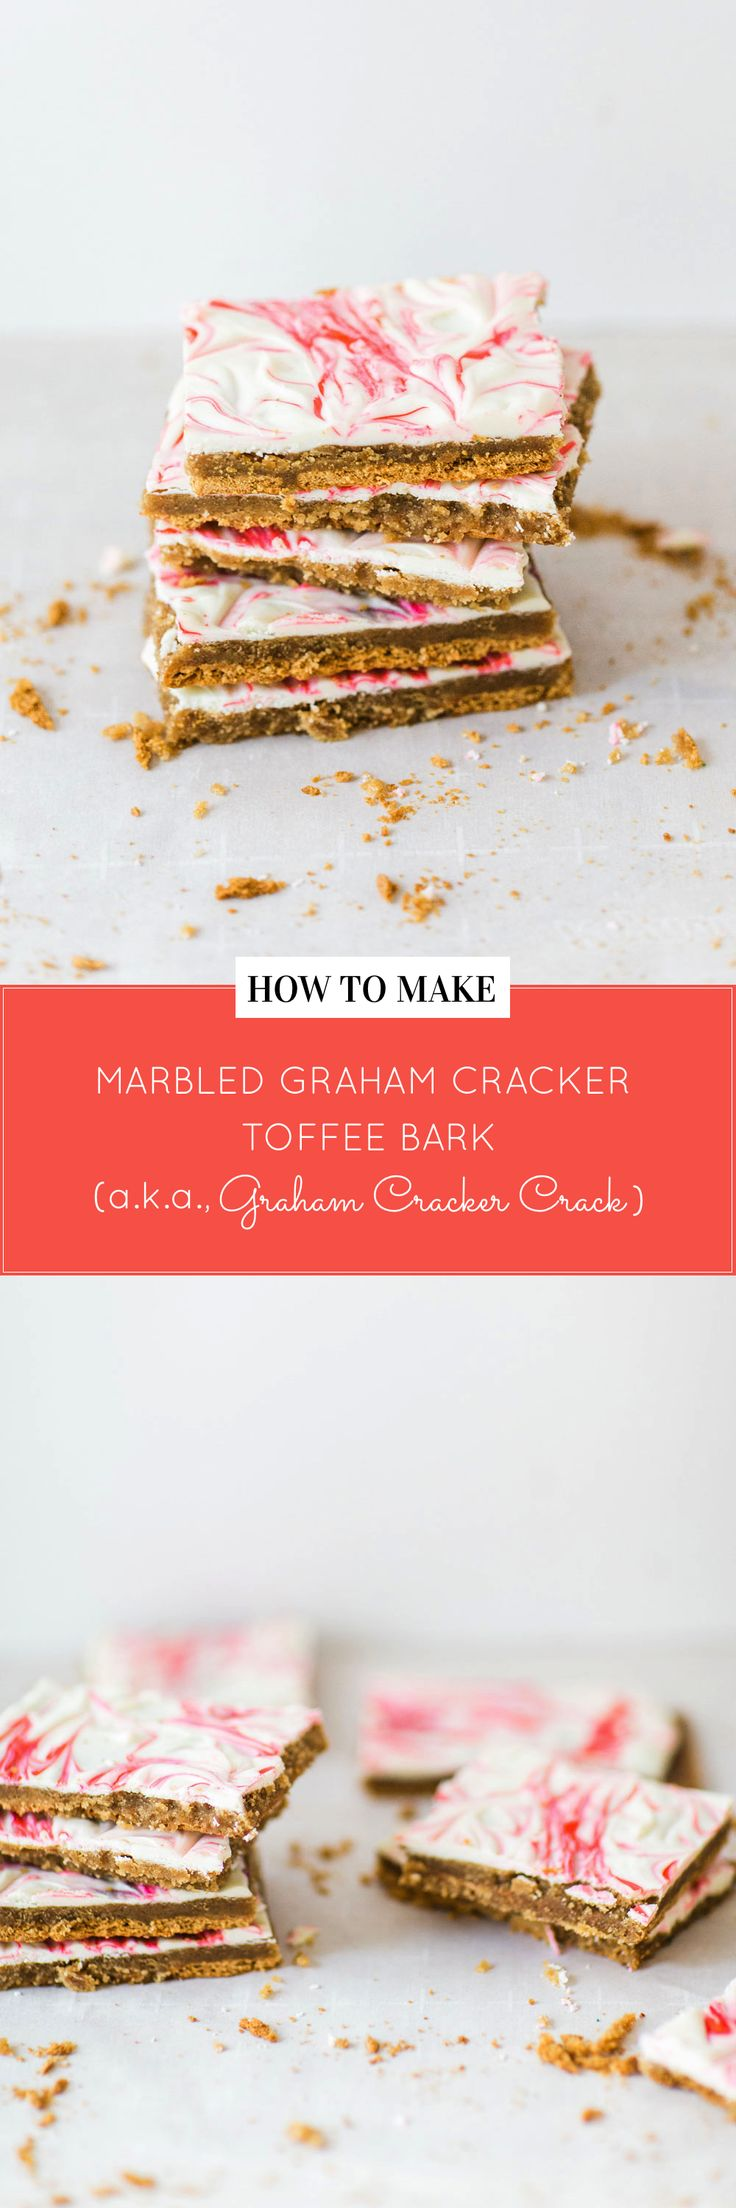 How to make marbled graham cracker toffee bark (a.k.a., graham cracker crack). It's kind of perfect for Valentine's Day, don't ya think? Click through for the recipe. | glitterinc.com | @glitterinc